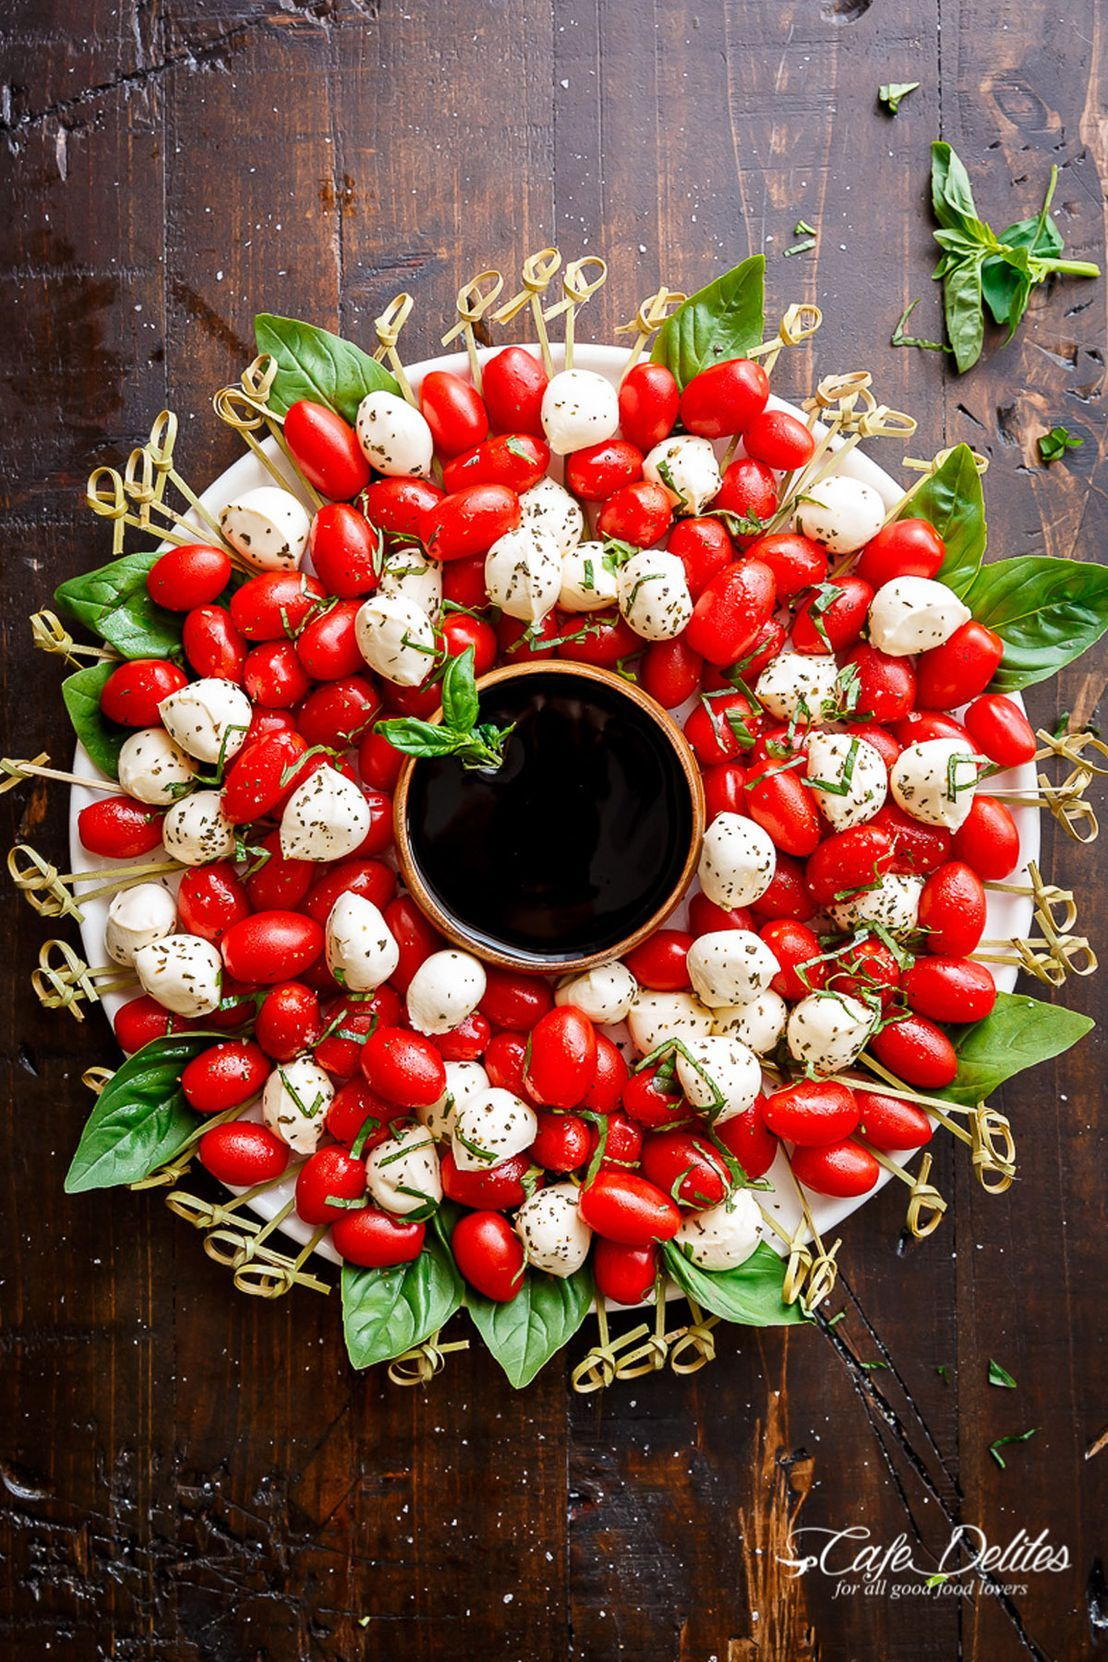 45 Delicious Christmas Appetizers To Serve At Your Holiday Party